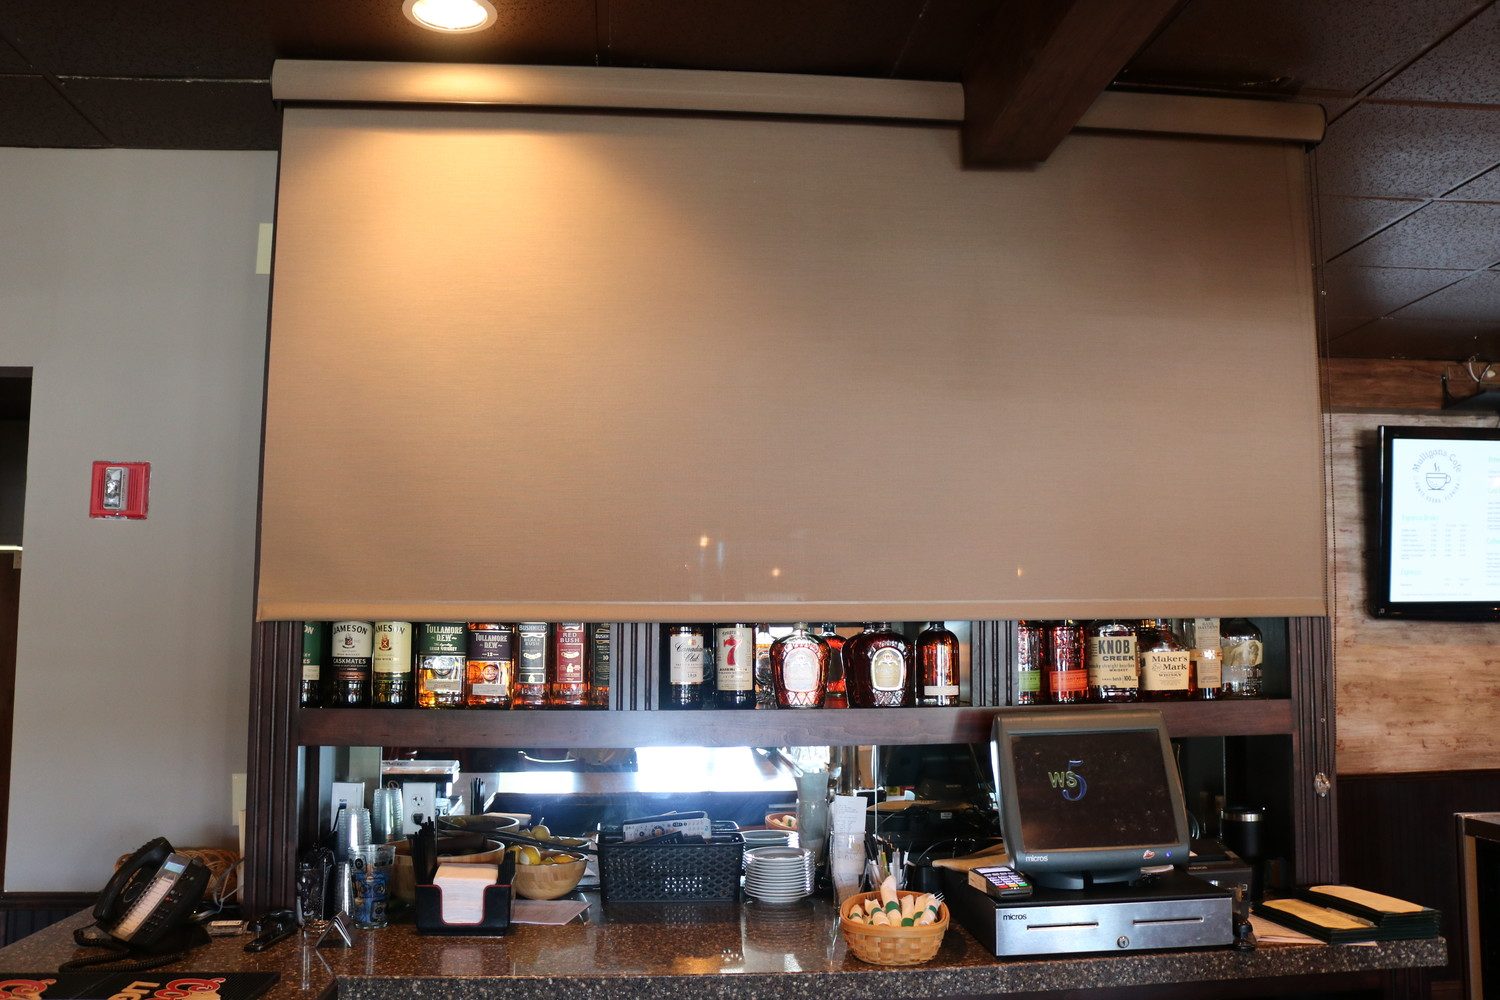 A covering hides the liquor display for breakfast guests, which helps add a morning atmosphere for a.m. customers.